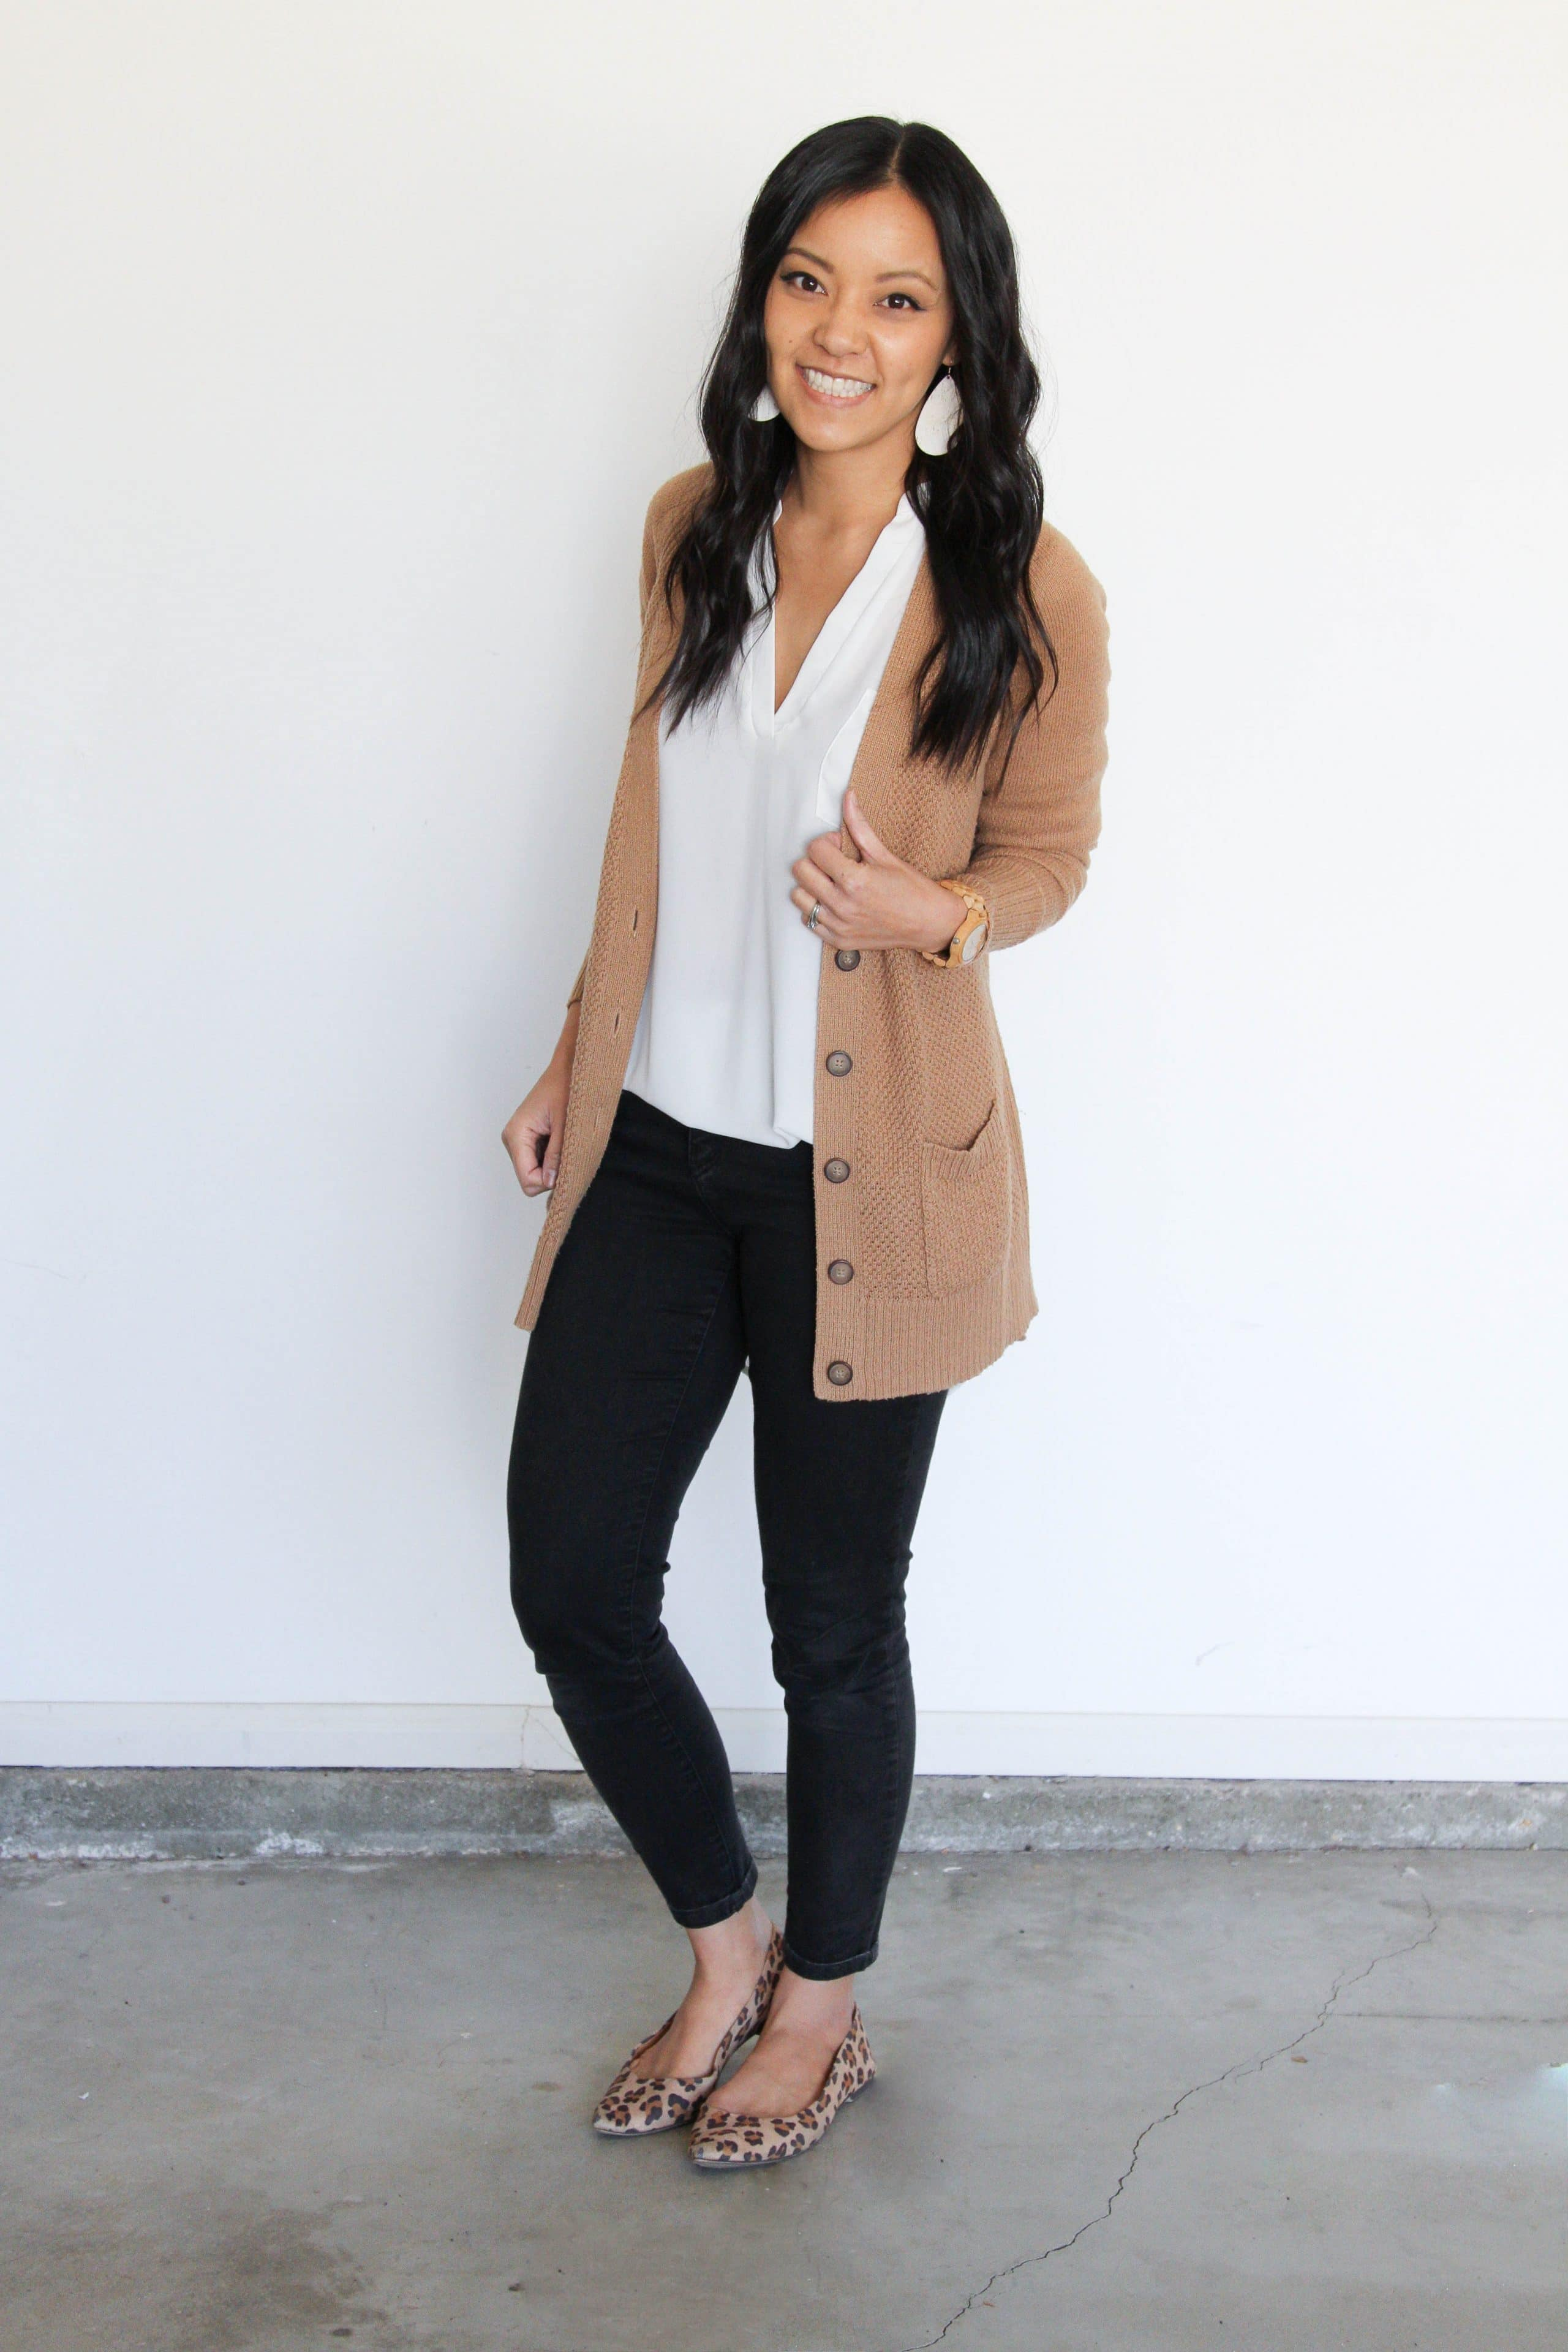 Camel Cardigan + White Lush Top + Black Jeans + Leopard Flats